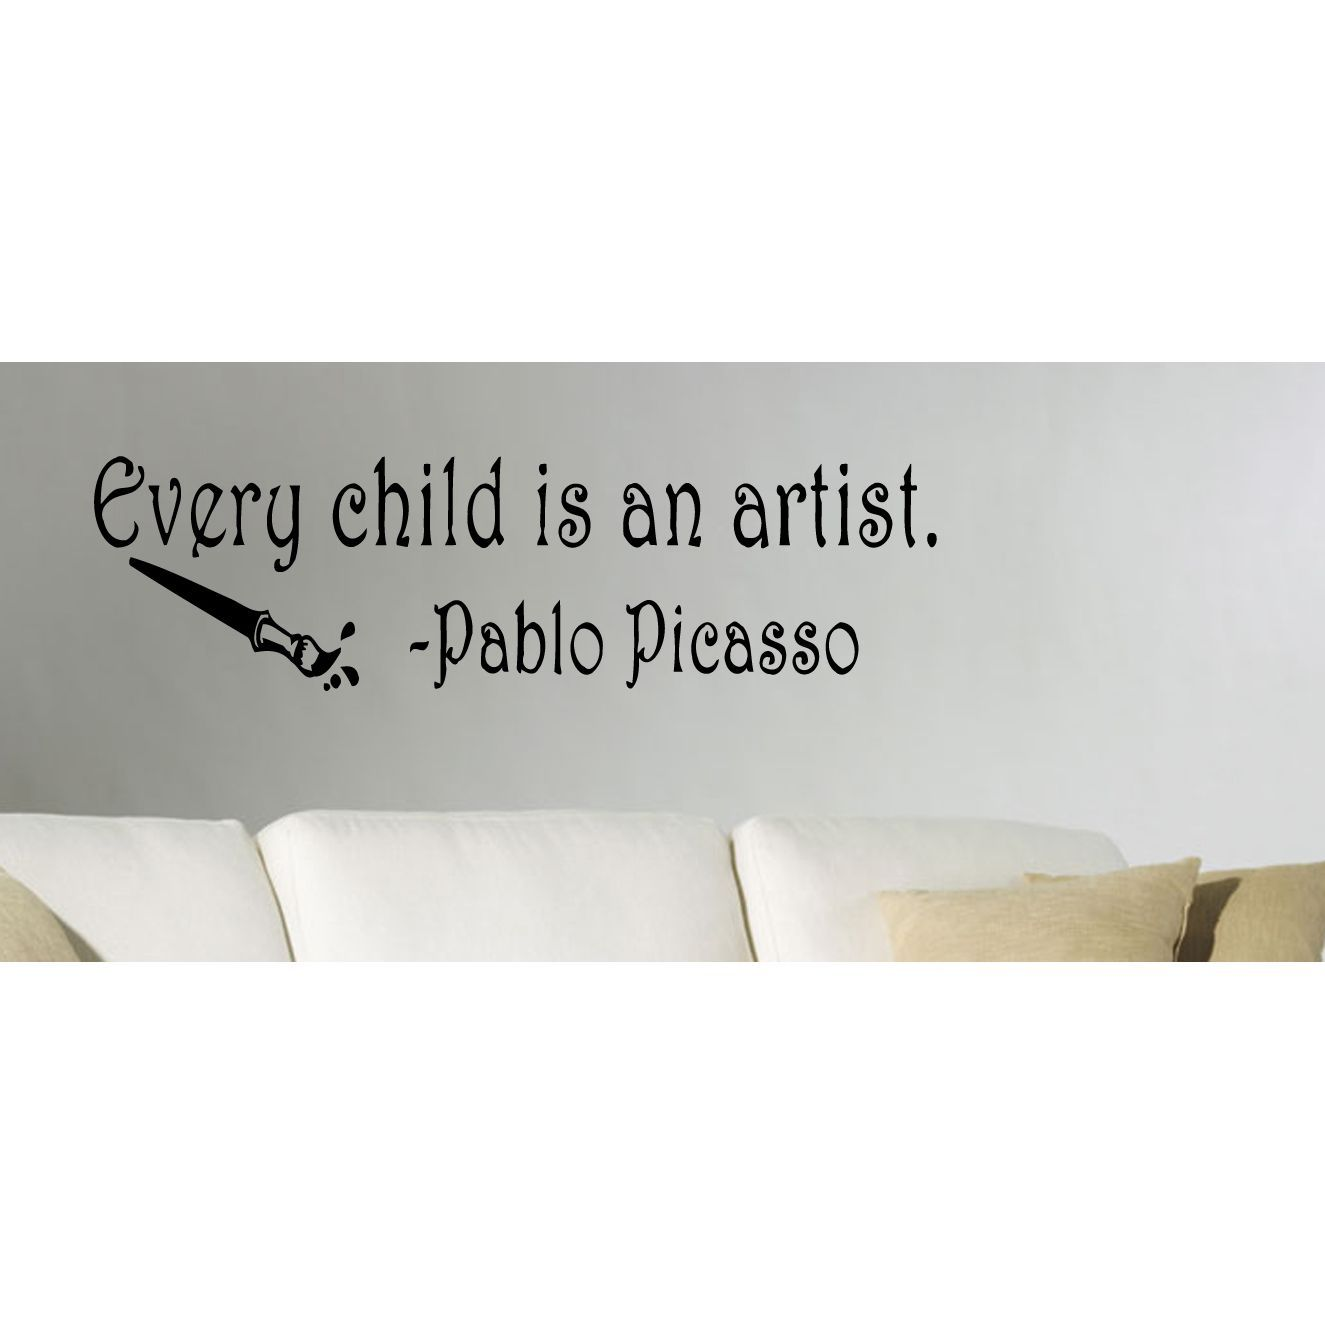 Every child is an artist quote wall art sticker decal girls